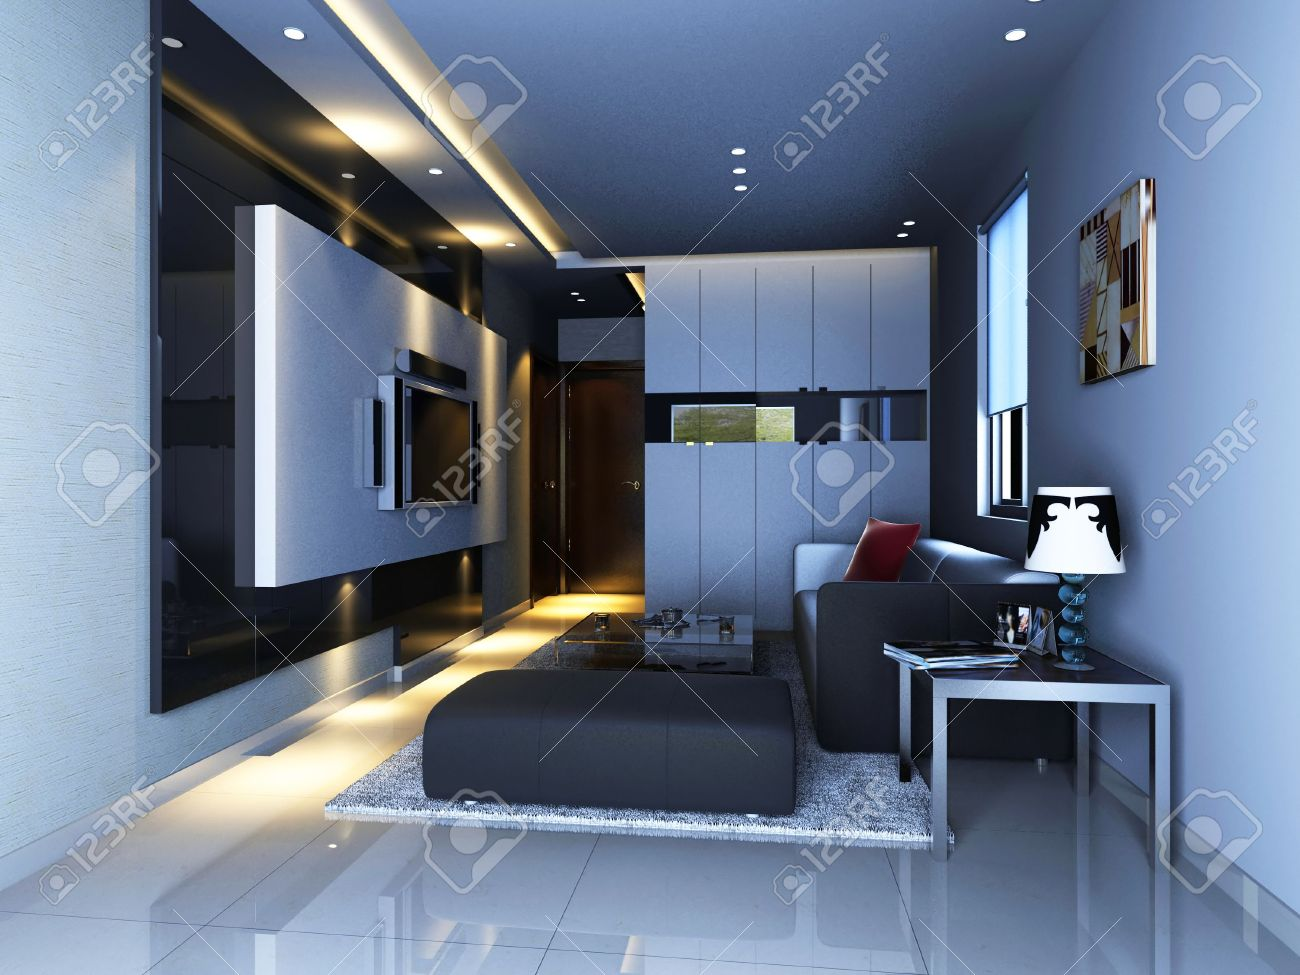 Interior Fashionable Living-room 3D Rendering Stock Photo, Picture ...